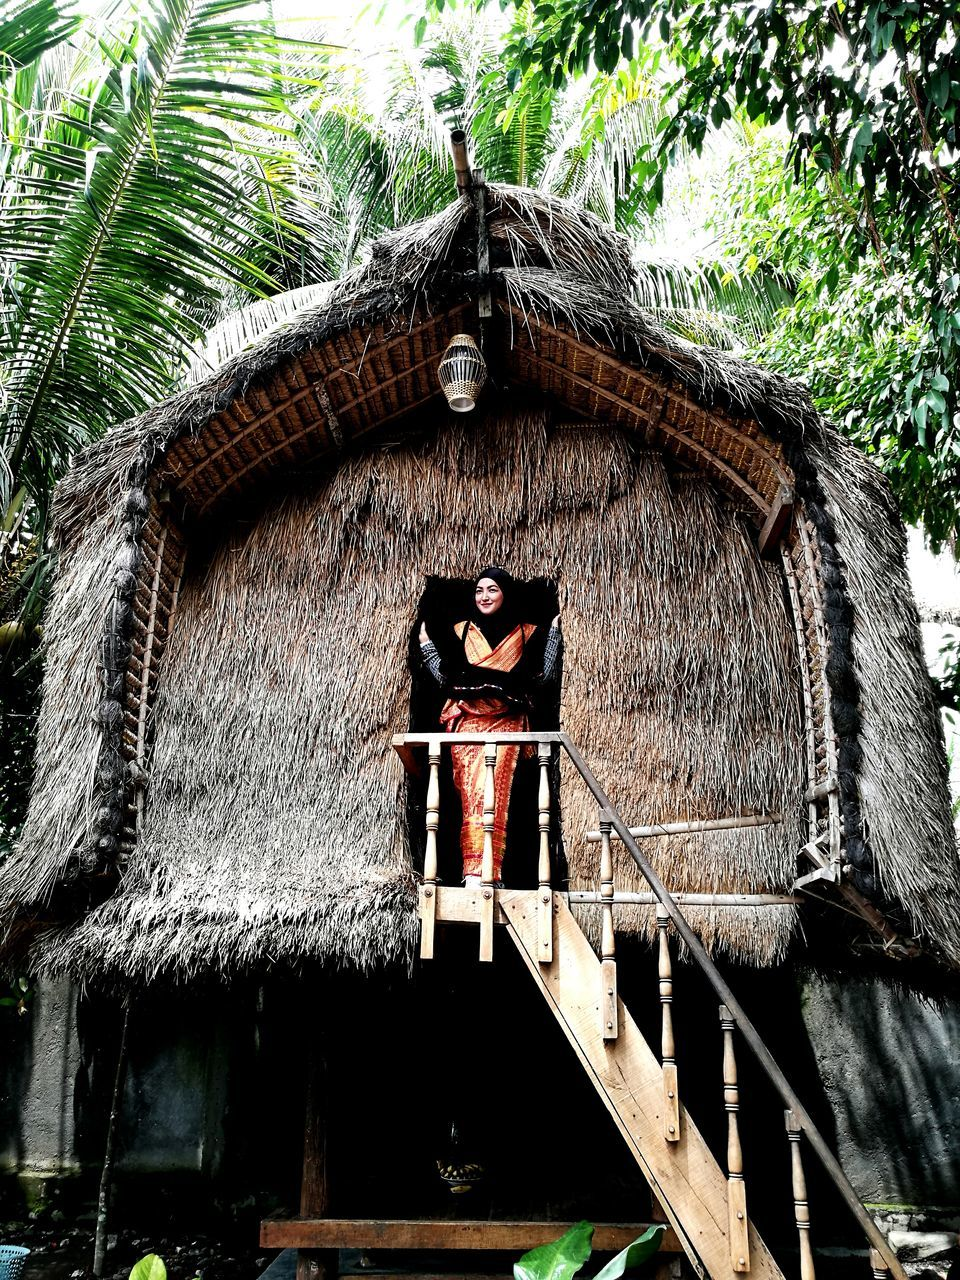 built structure, architecture, low angle view, building exterior, thatched roof, history, real people, outdoors, day, lifestyles, standing, one person, tree, nature, young adult, people